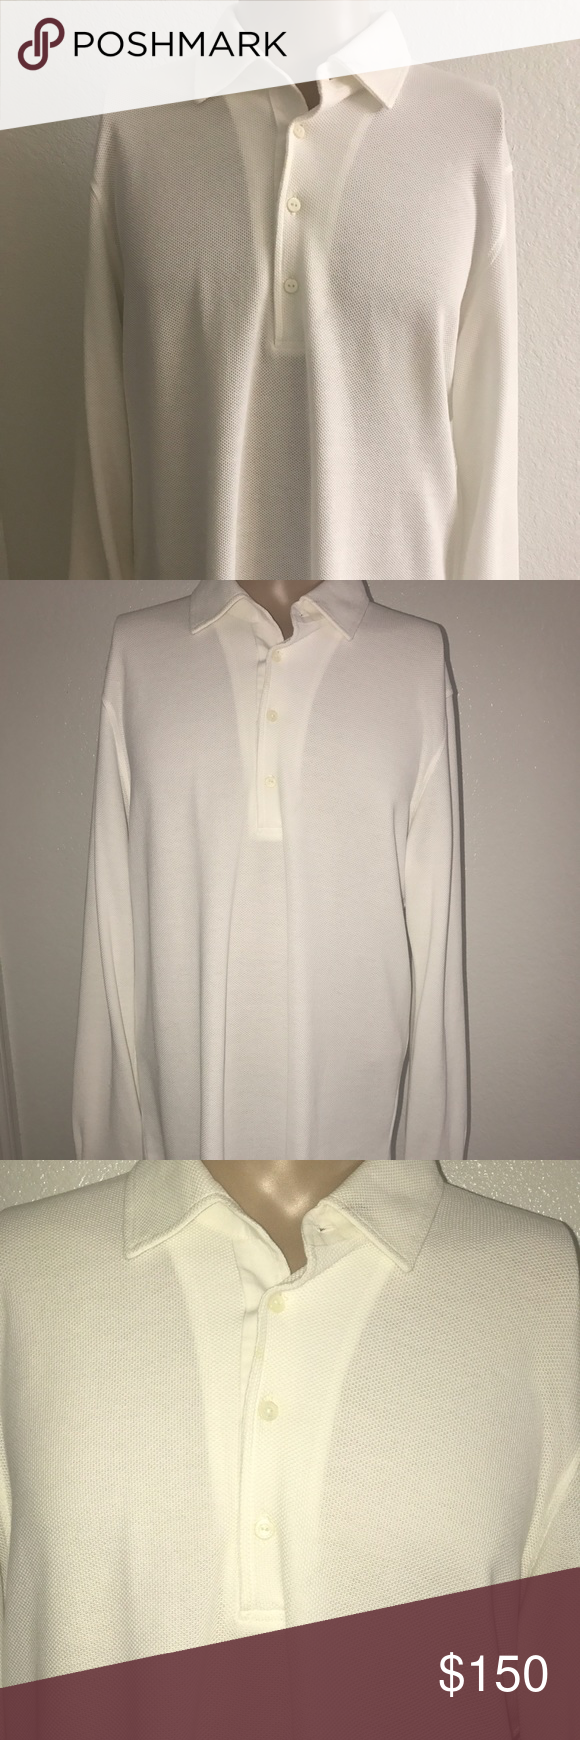 Men's shirt Men's large 100 percent cotton shirt in excellent condition. Loro Piana Shirts Tees - Long Sleeve